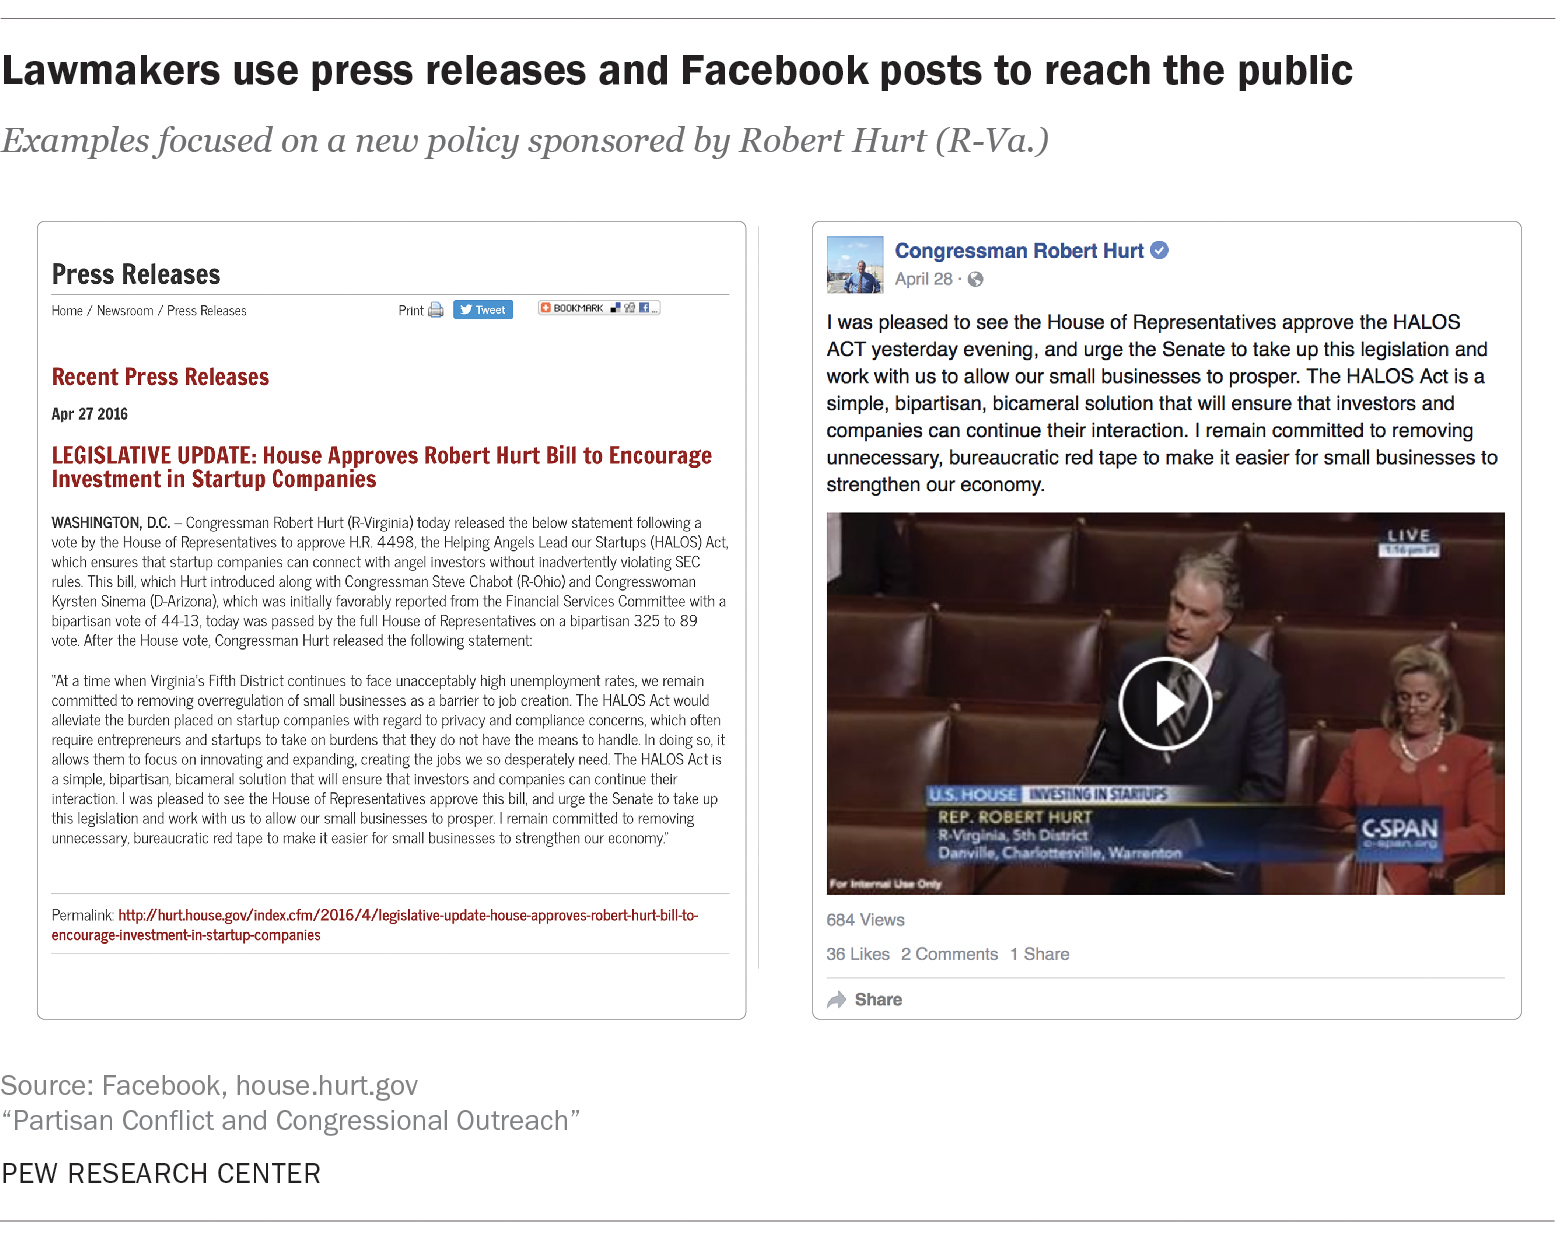 Lawmakers use press releases and Facebook posts to reach the public